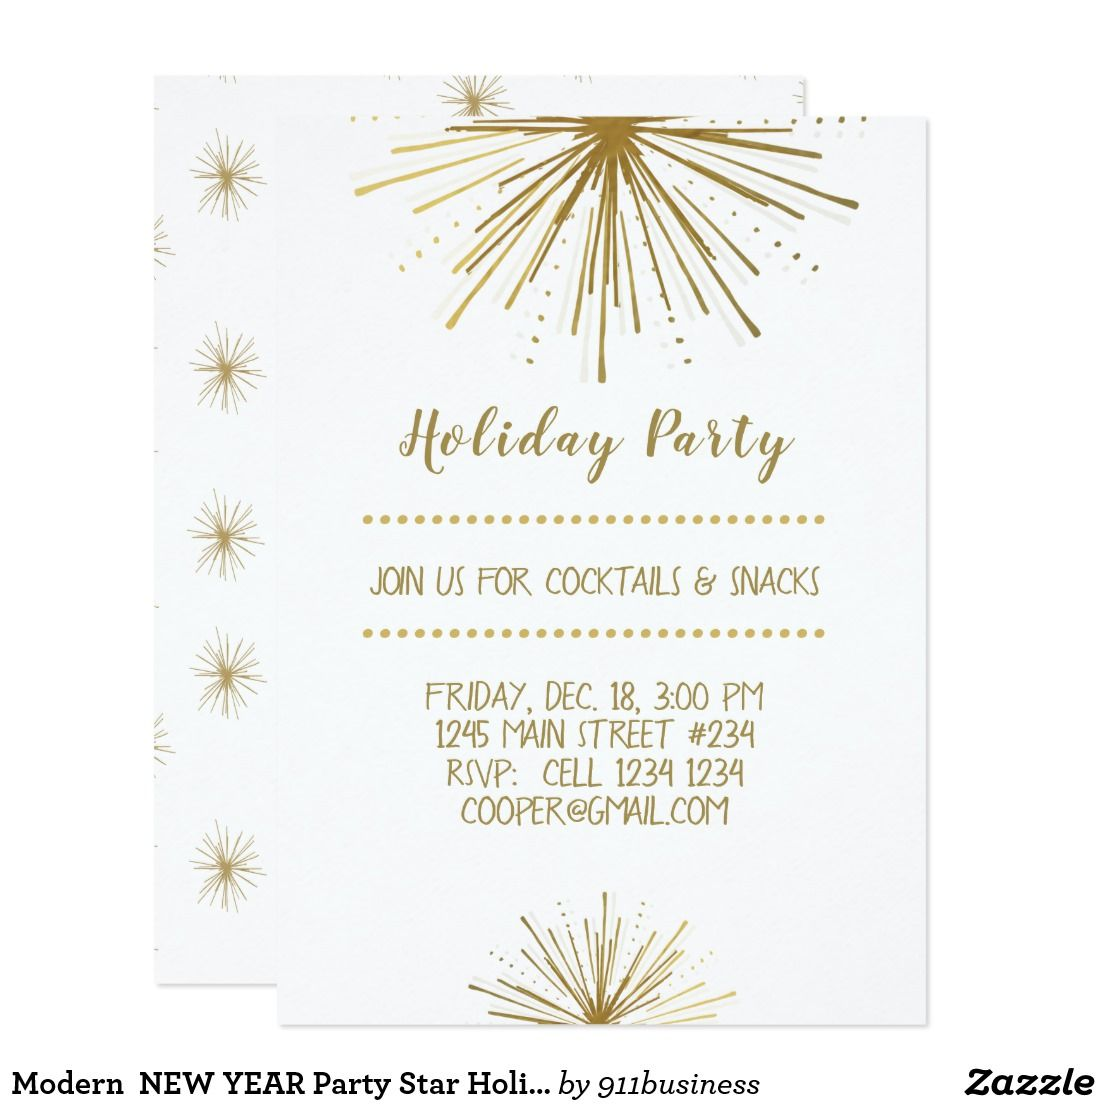 Modern NEW YEAR Party Star Holiday Party Invitation